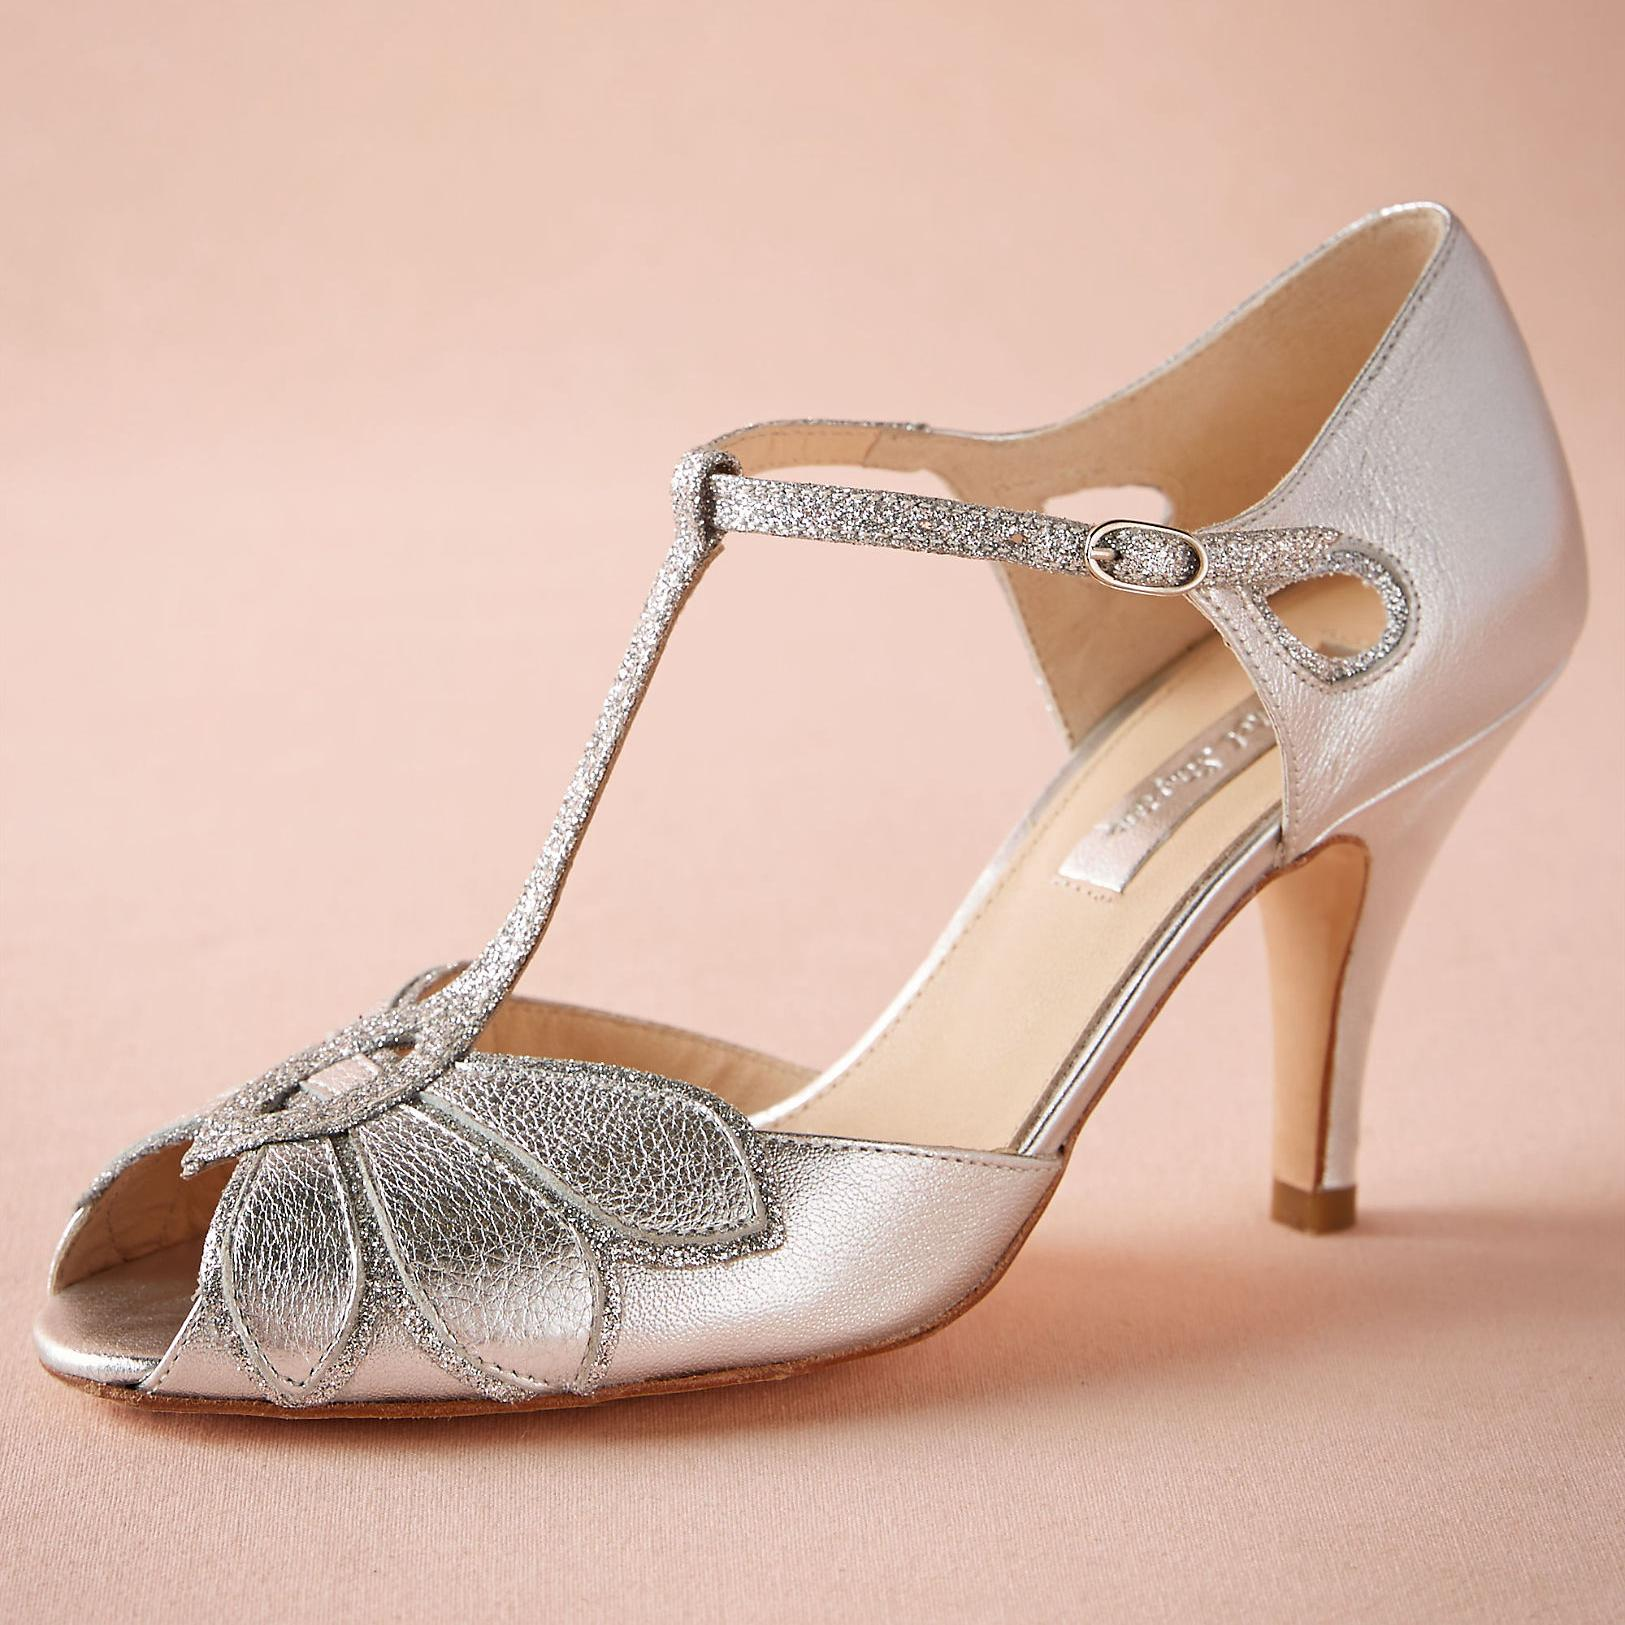 Silver Wedding Shoes Glitter Pumps Mimosa T Straps Buckle Closure ...